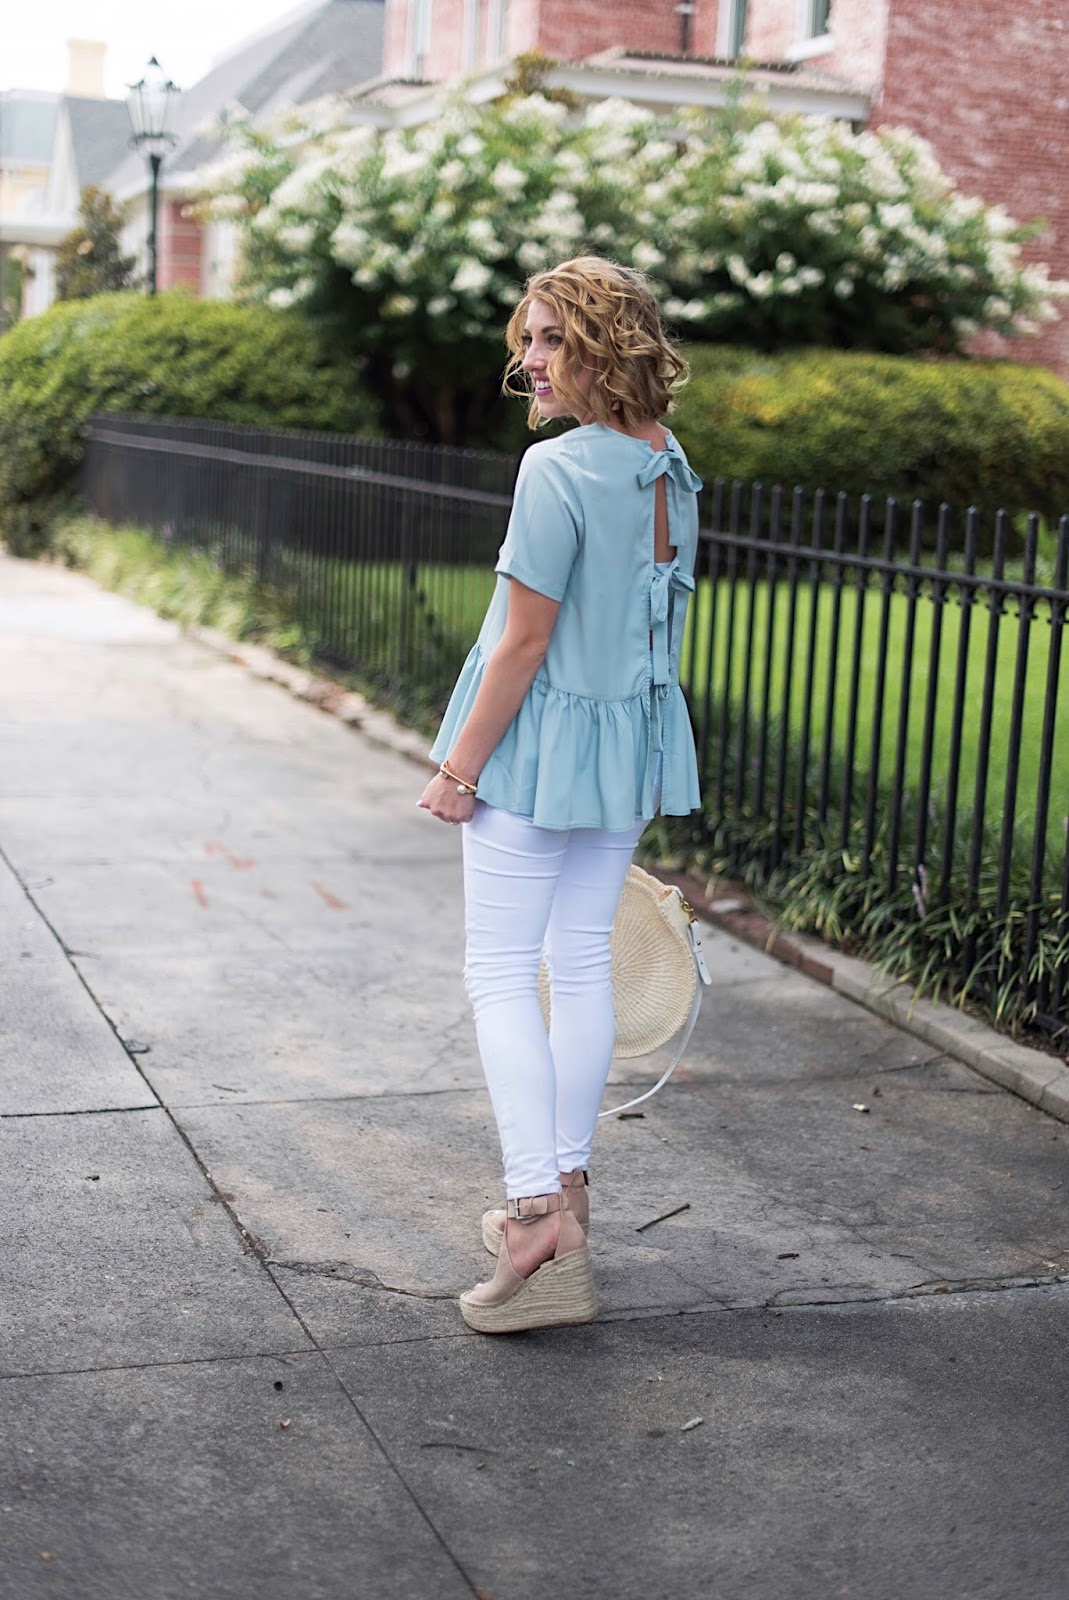 Bow Back Peplum Top - Click through to see more on Something Delightful blog!